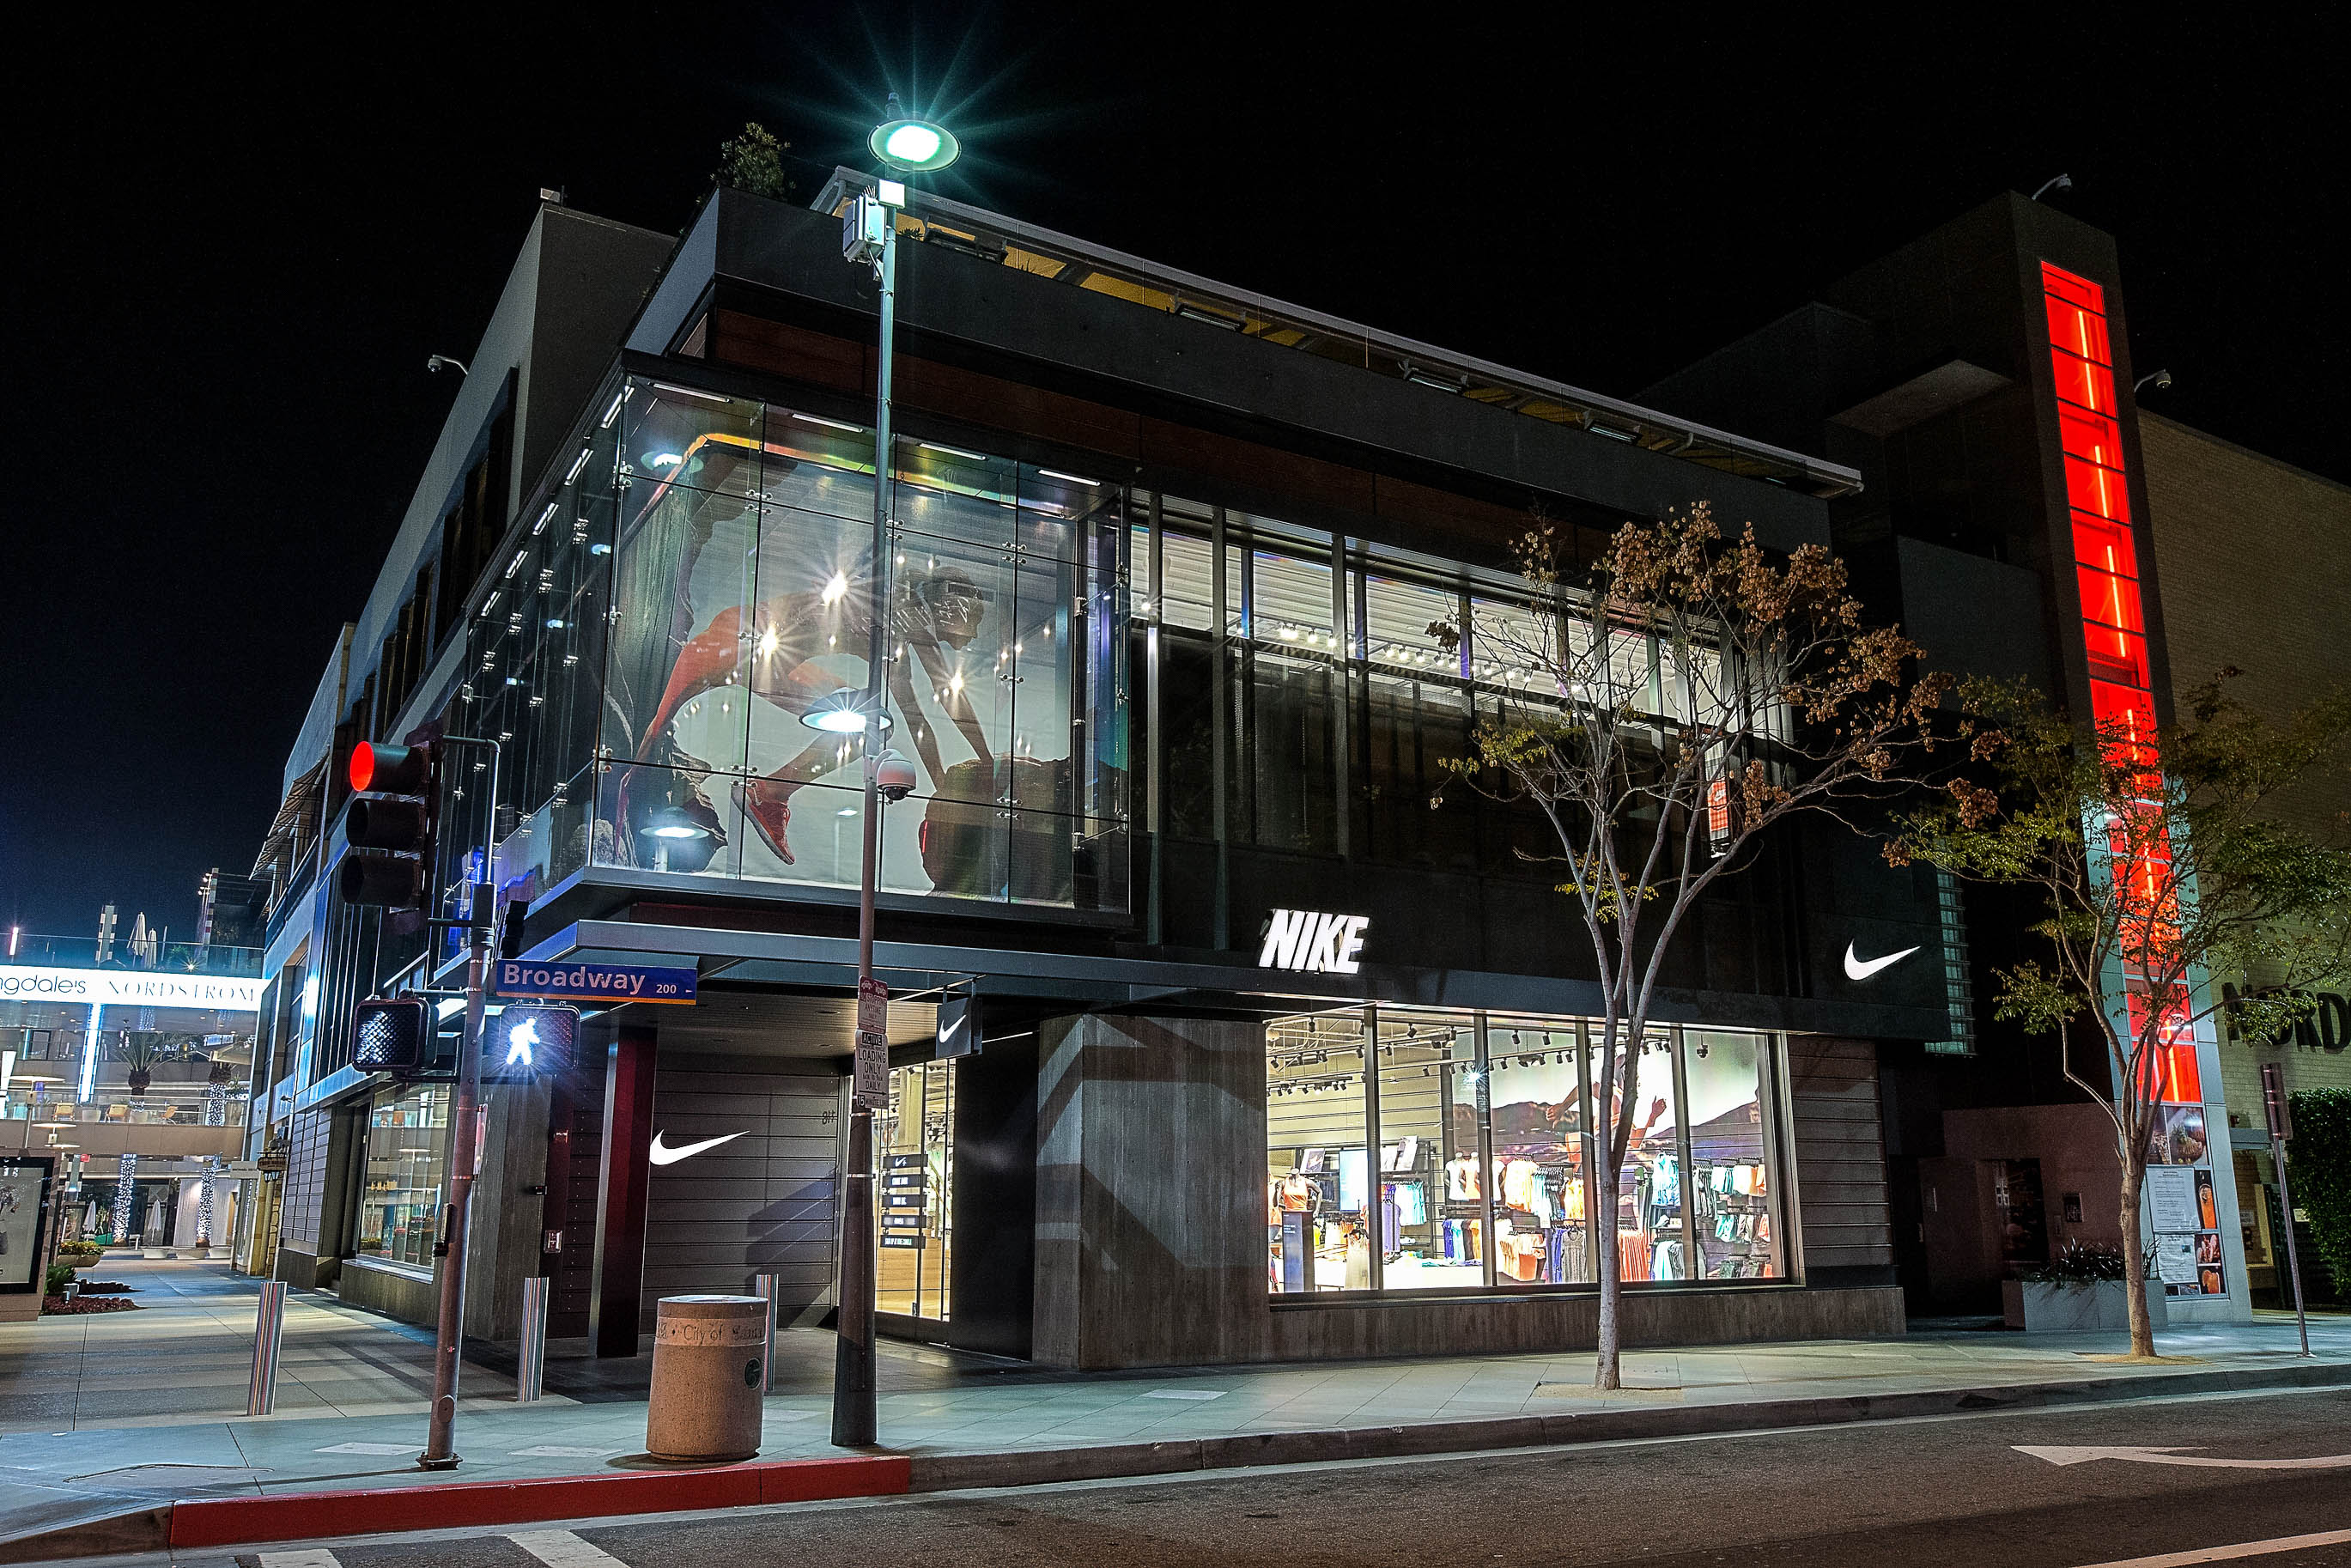 Store Exterieur Amazon Nike Reopens Santa Monica Store With New Focus On Women 39s